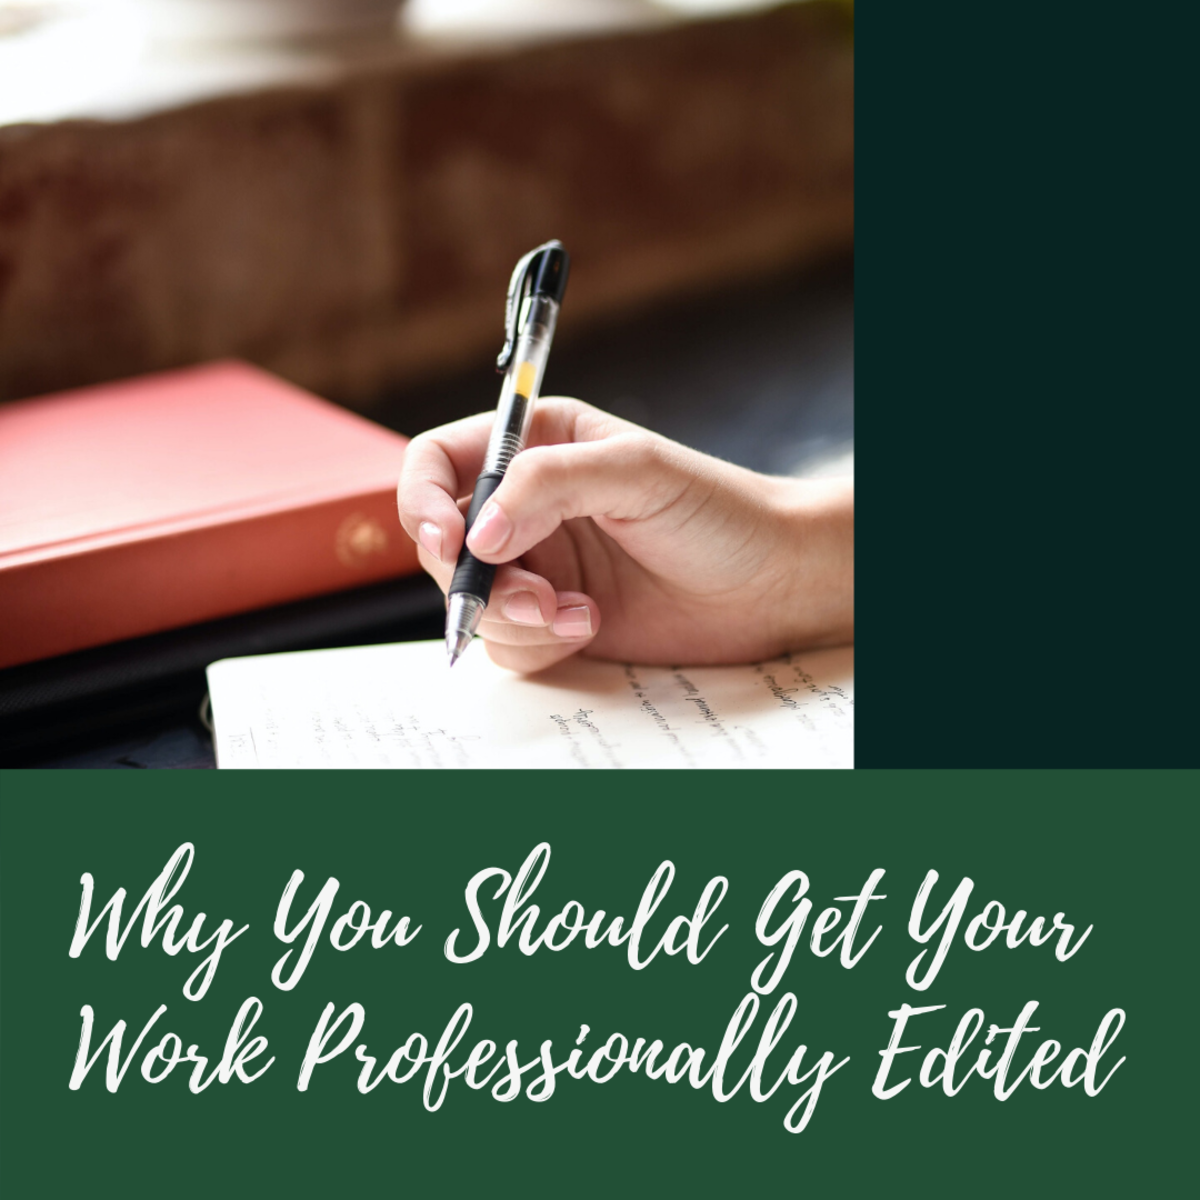 Why You Should Get Your Work Professionally Edited